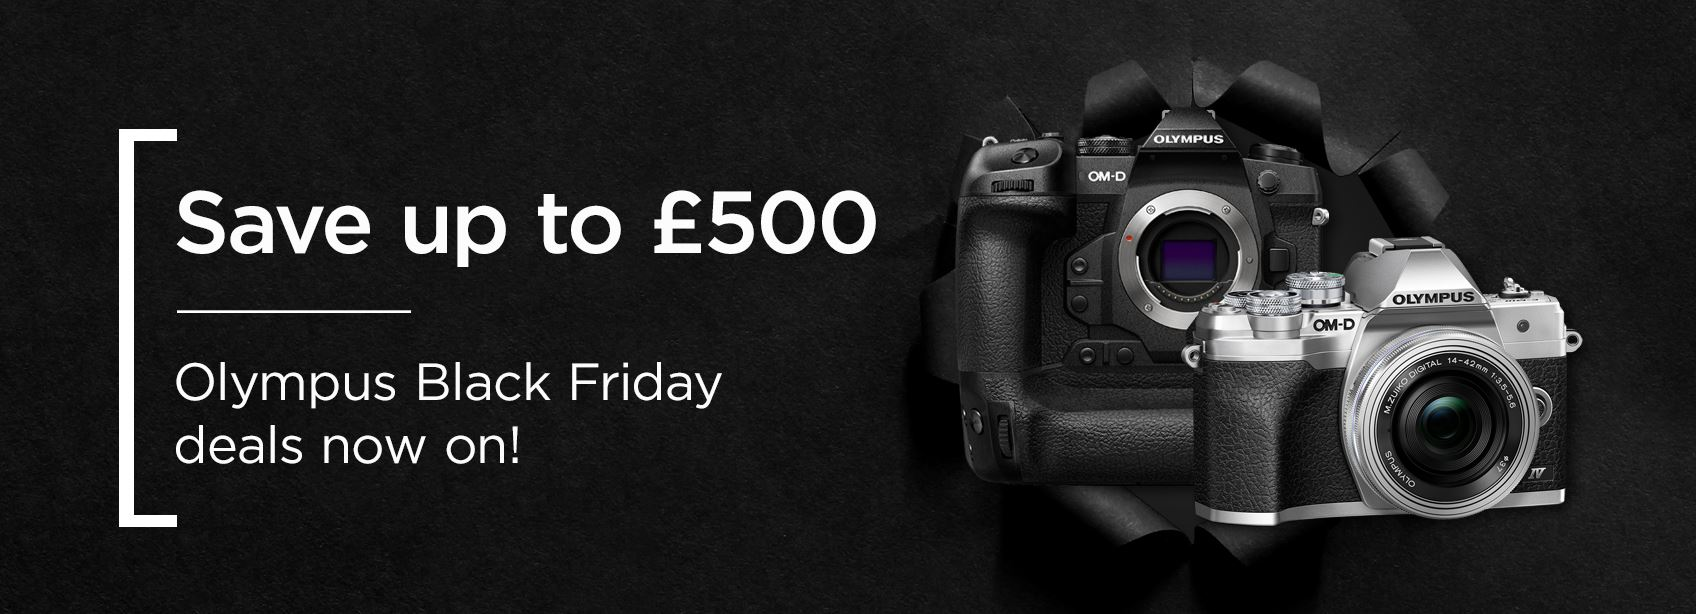 Save up to £500 - Olympus Black Friday deals now on!